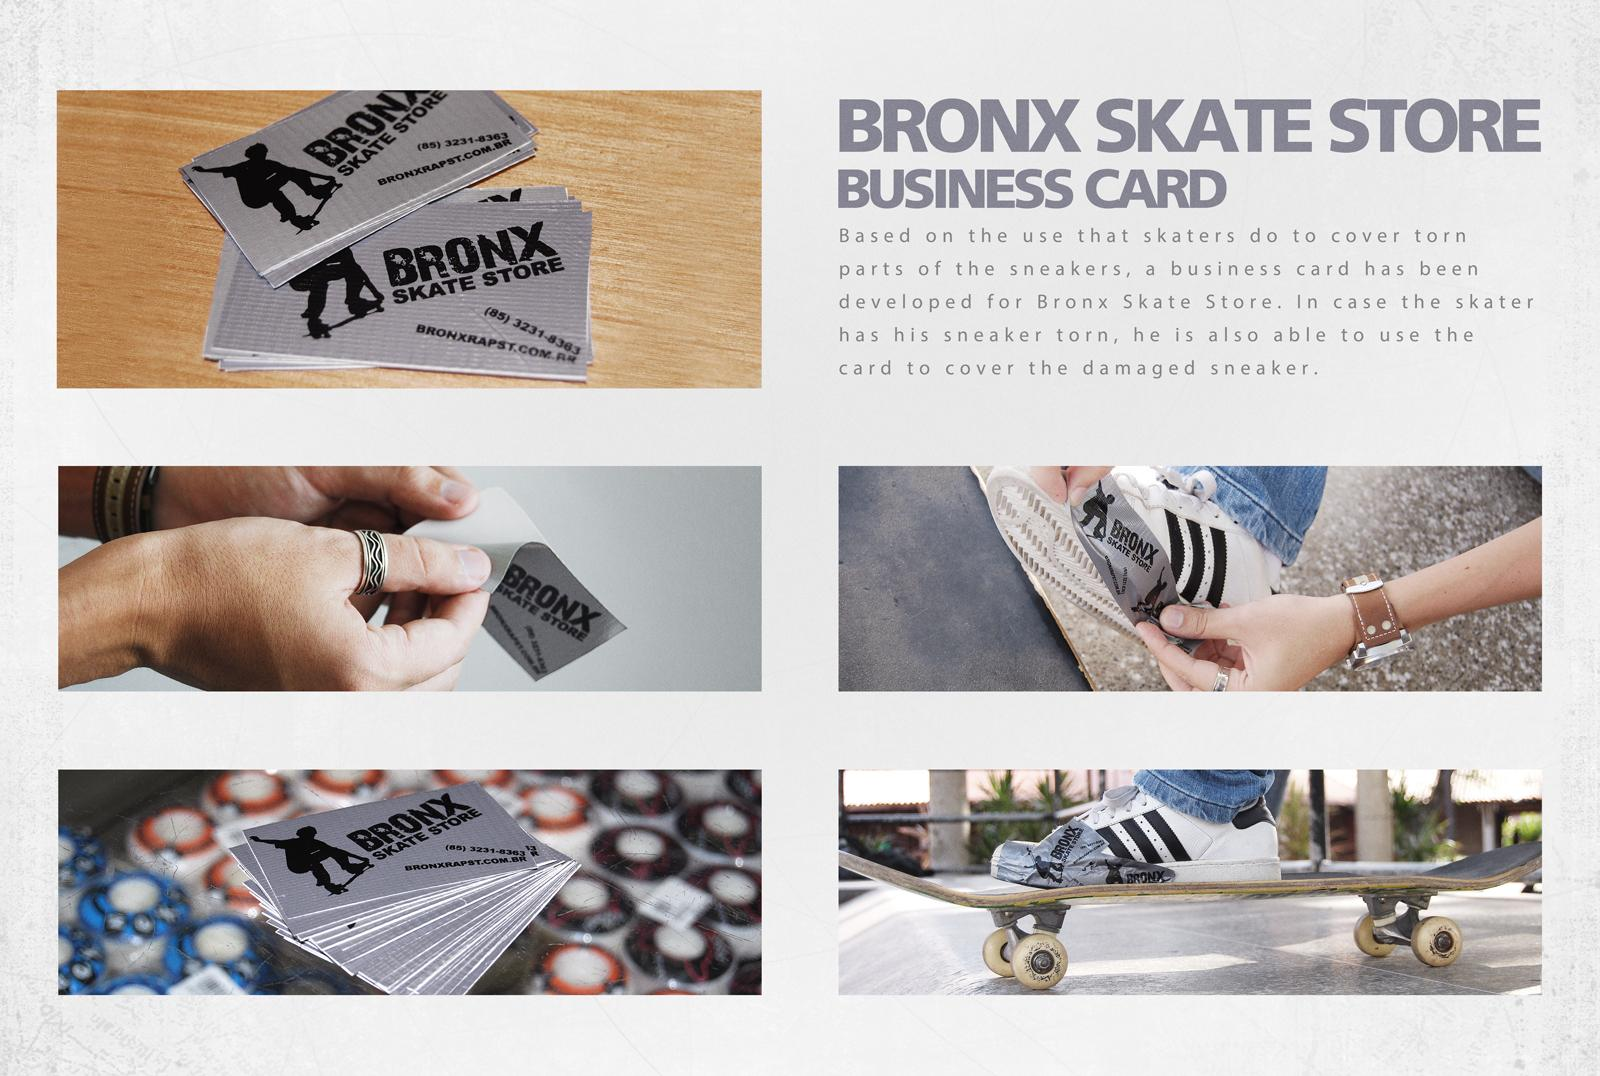 Bronx Skate Store Direct Advert By Todacor: Business card | Ads of ...